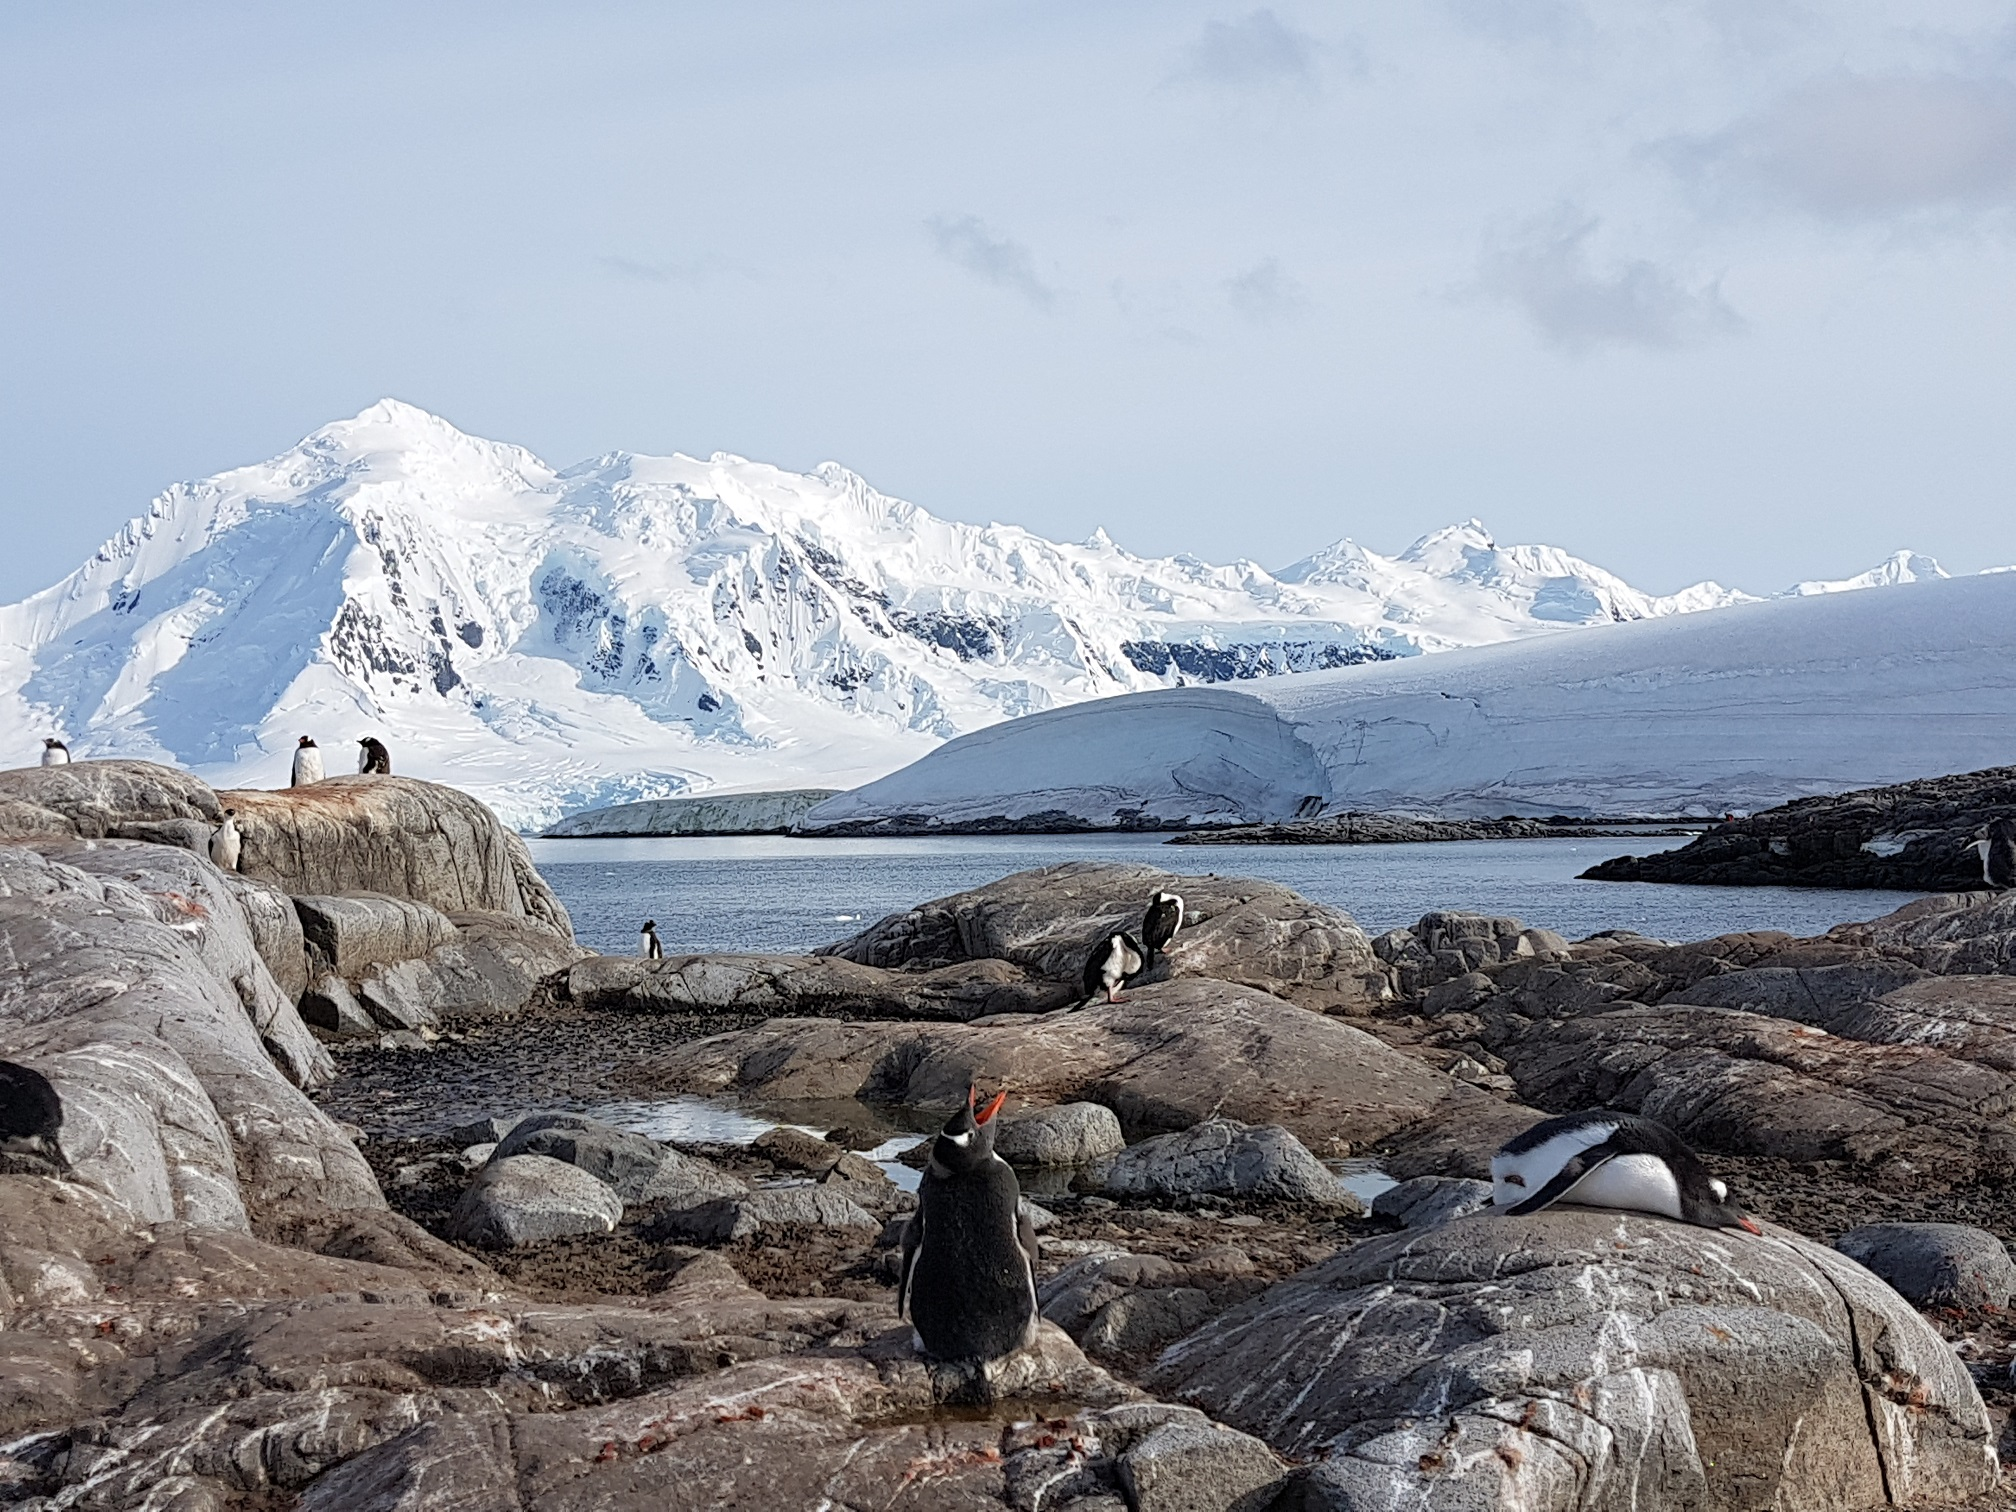 Penguins sitting on rocks with snow covered mountain in background